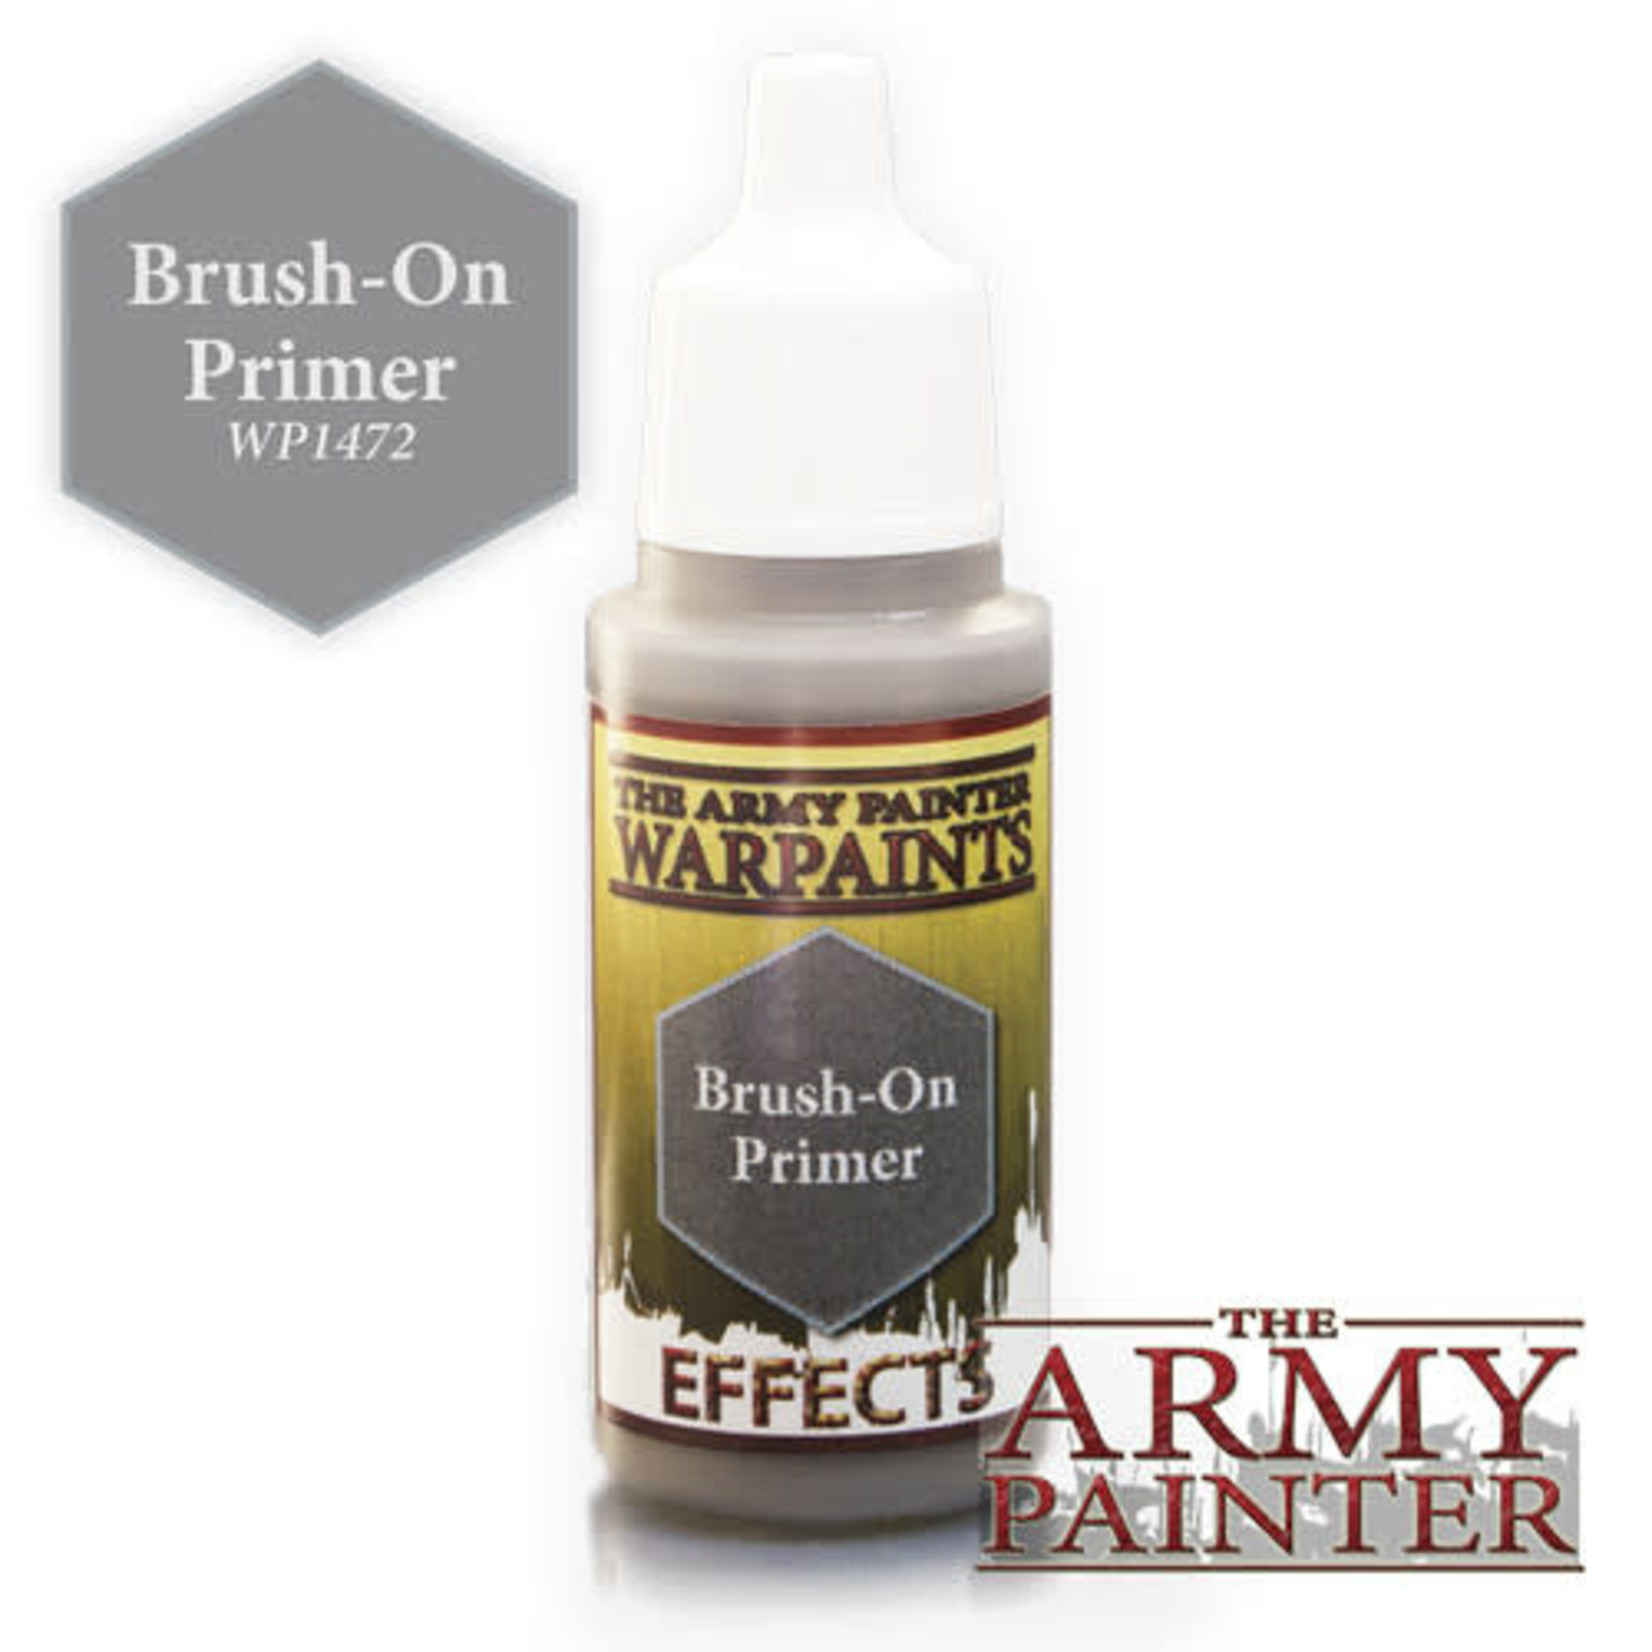 The Army Painter Brush on Primer